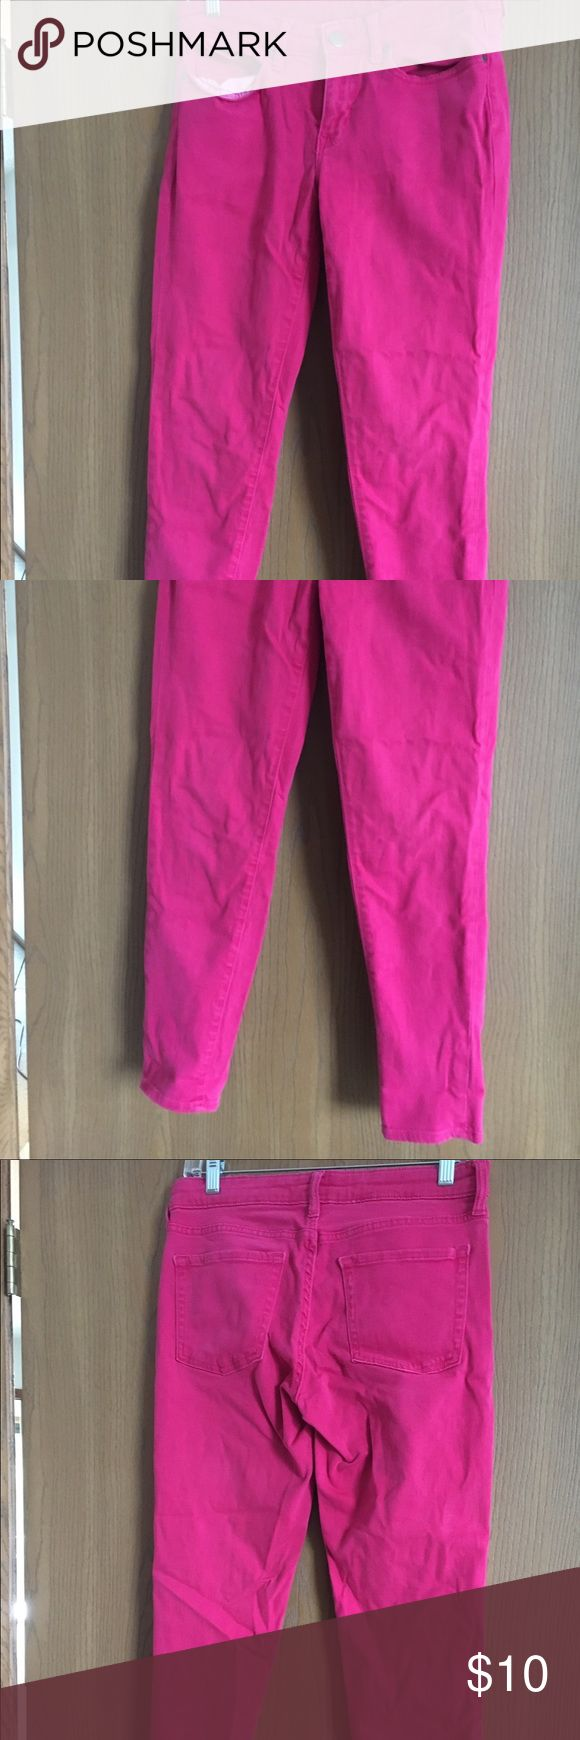 Gap size 8 hot pink super skinny jeans Gap size 8 super skinny jeans. Hot pink. Worn a few times. Cute rolled up into capris. GAP Pants Skinny